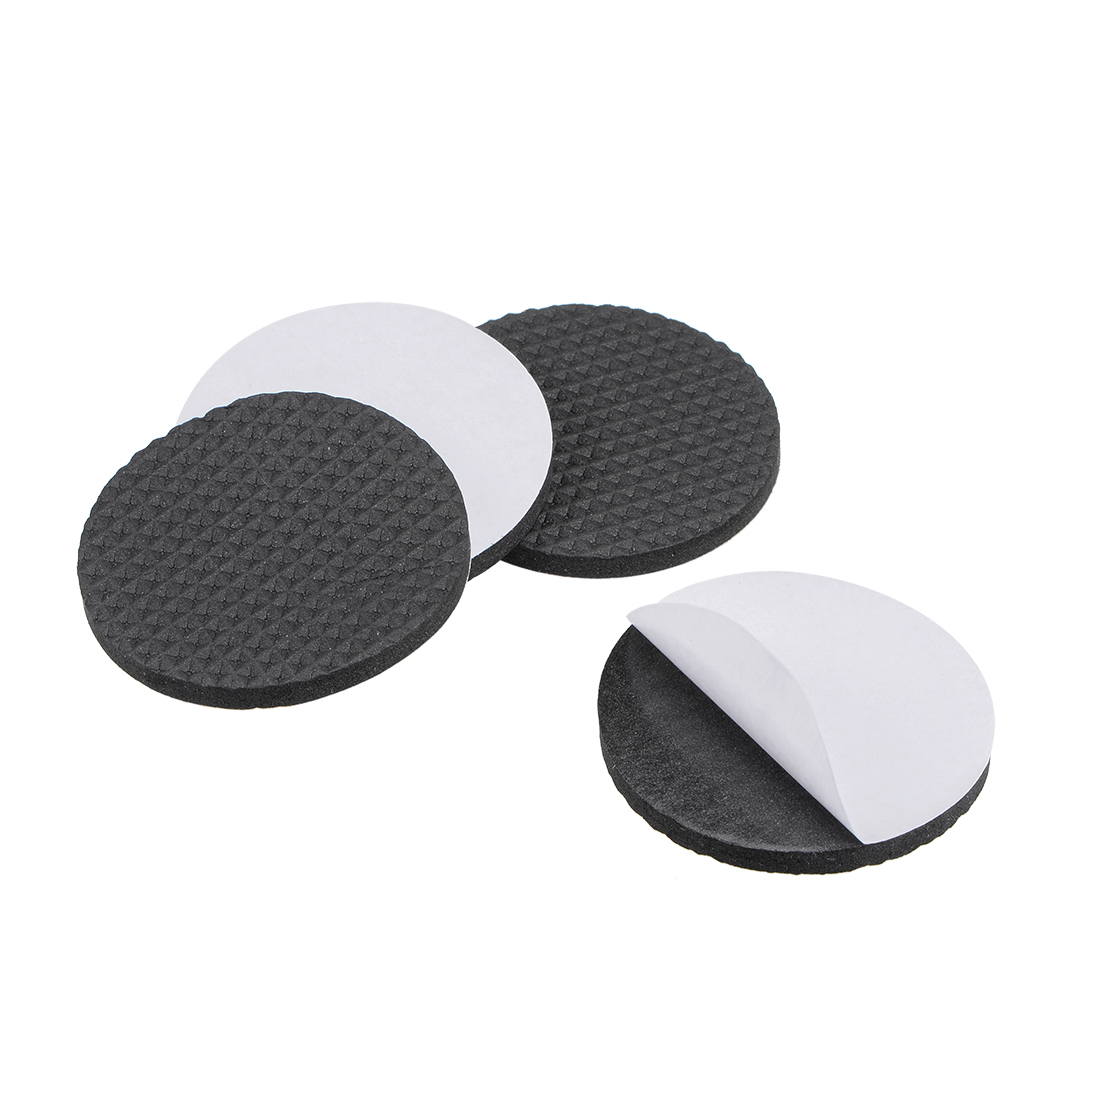 Furniture Pads Adhesive Rubber Pads 50mm Dia 4mm Thick Round Black 4Pcs